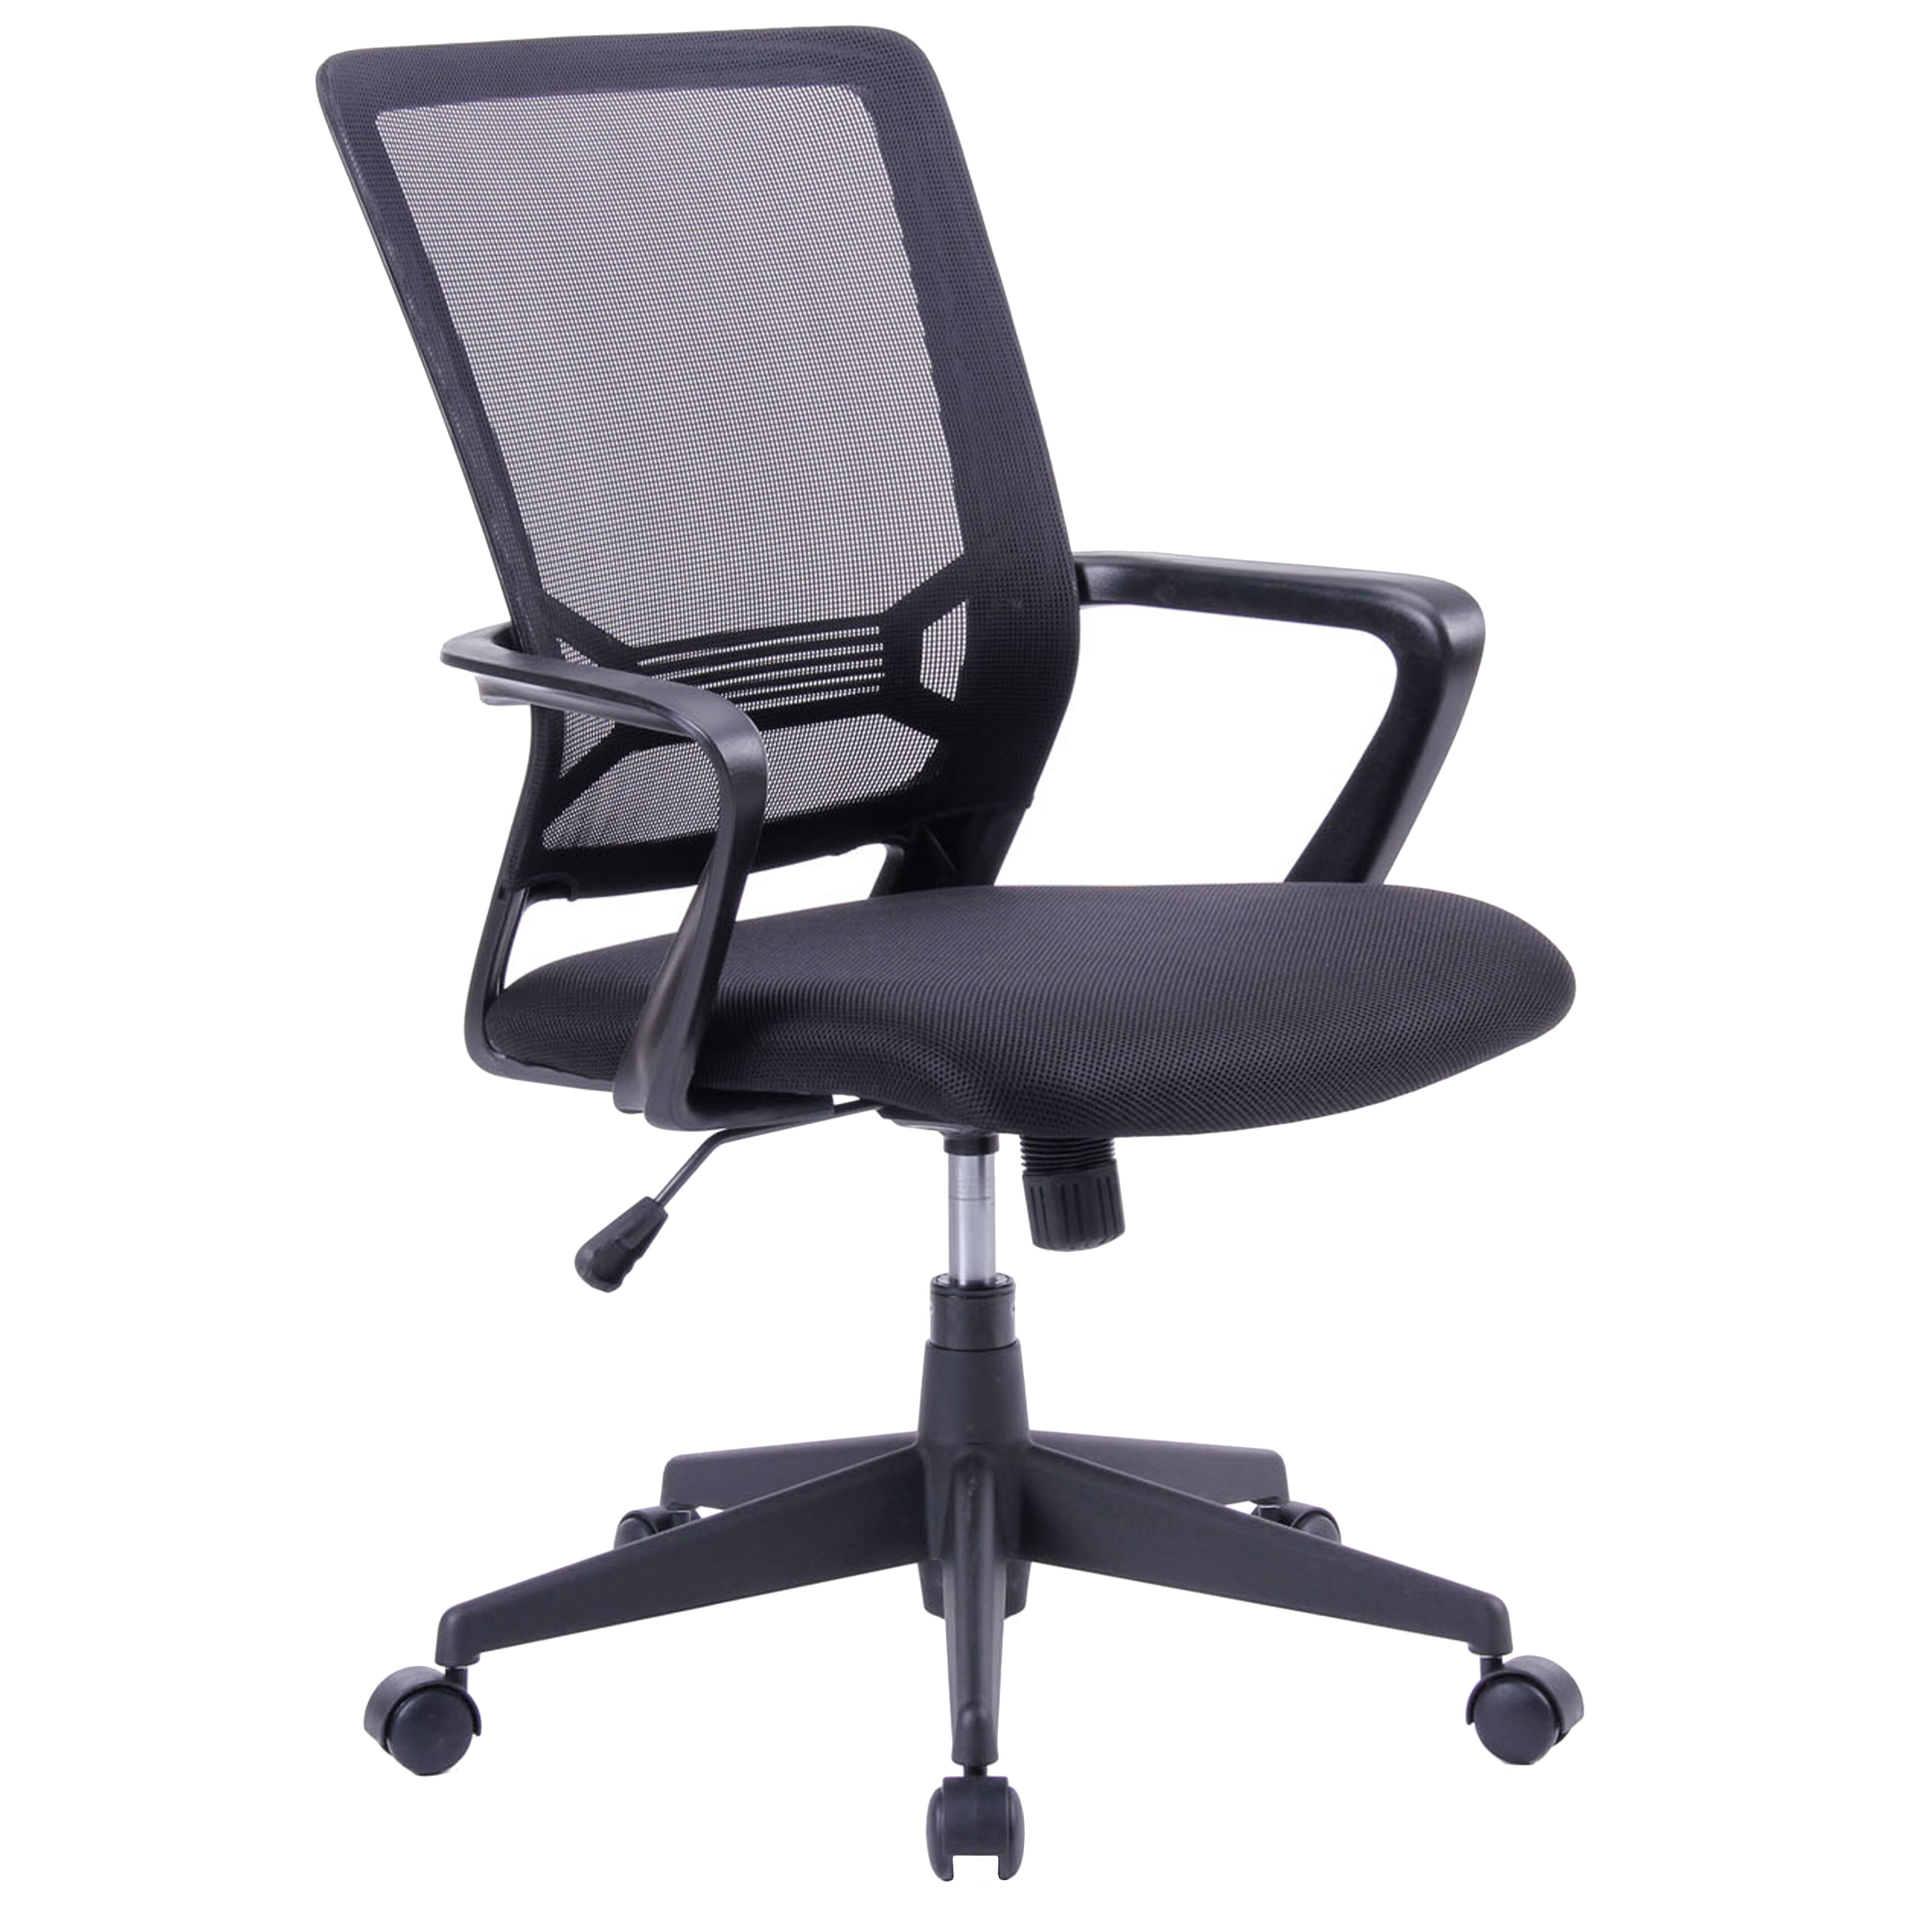 Porthos Home Angelina Adjustable Office Chair With Arms Reviews Wayfair